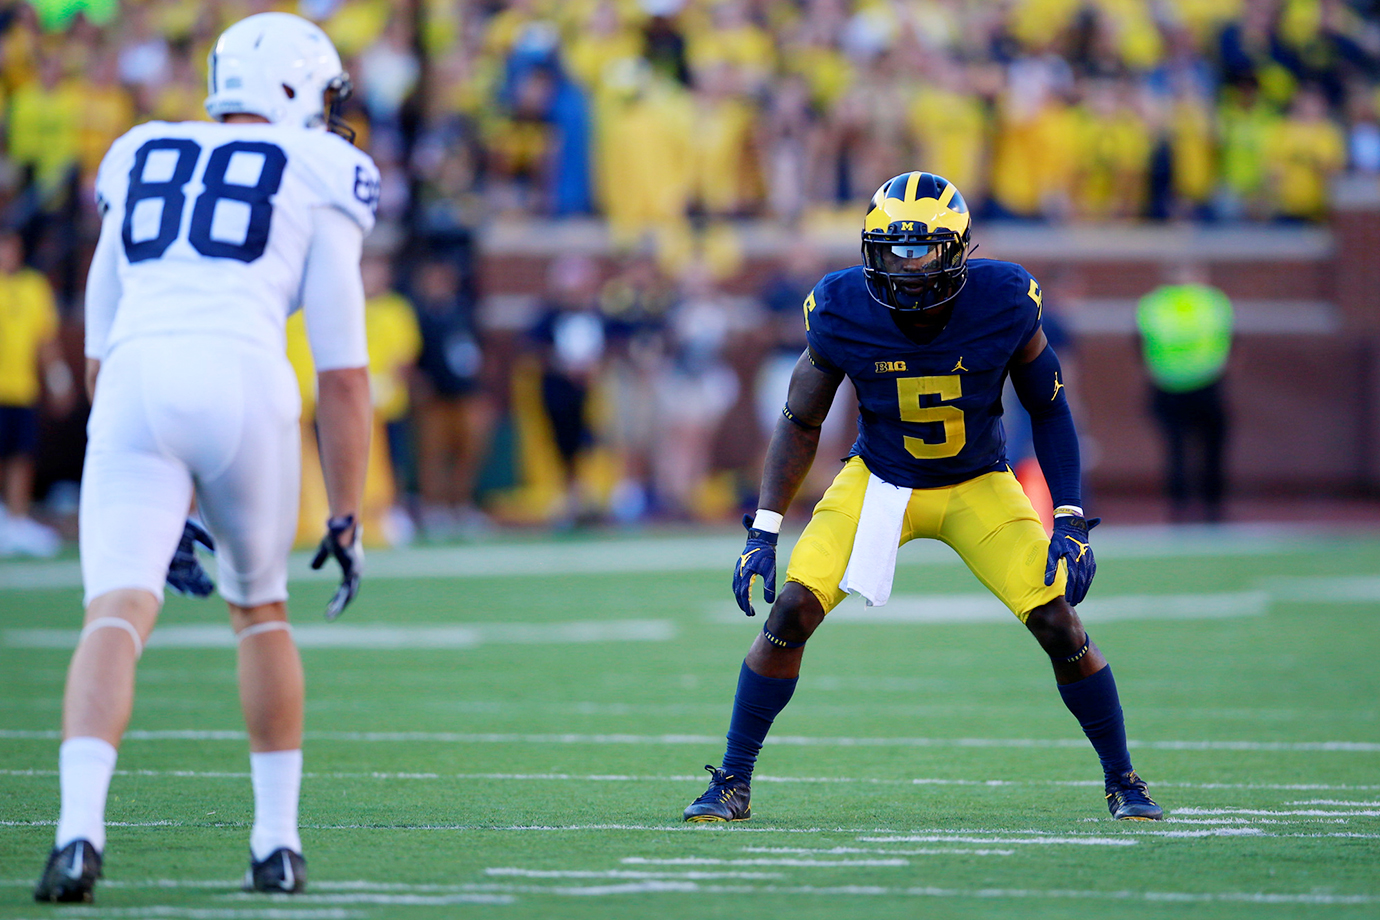 Jabrill-peppers-michigan-wolverines-football-nfl-draft